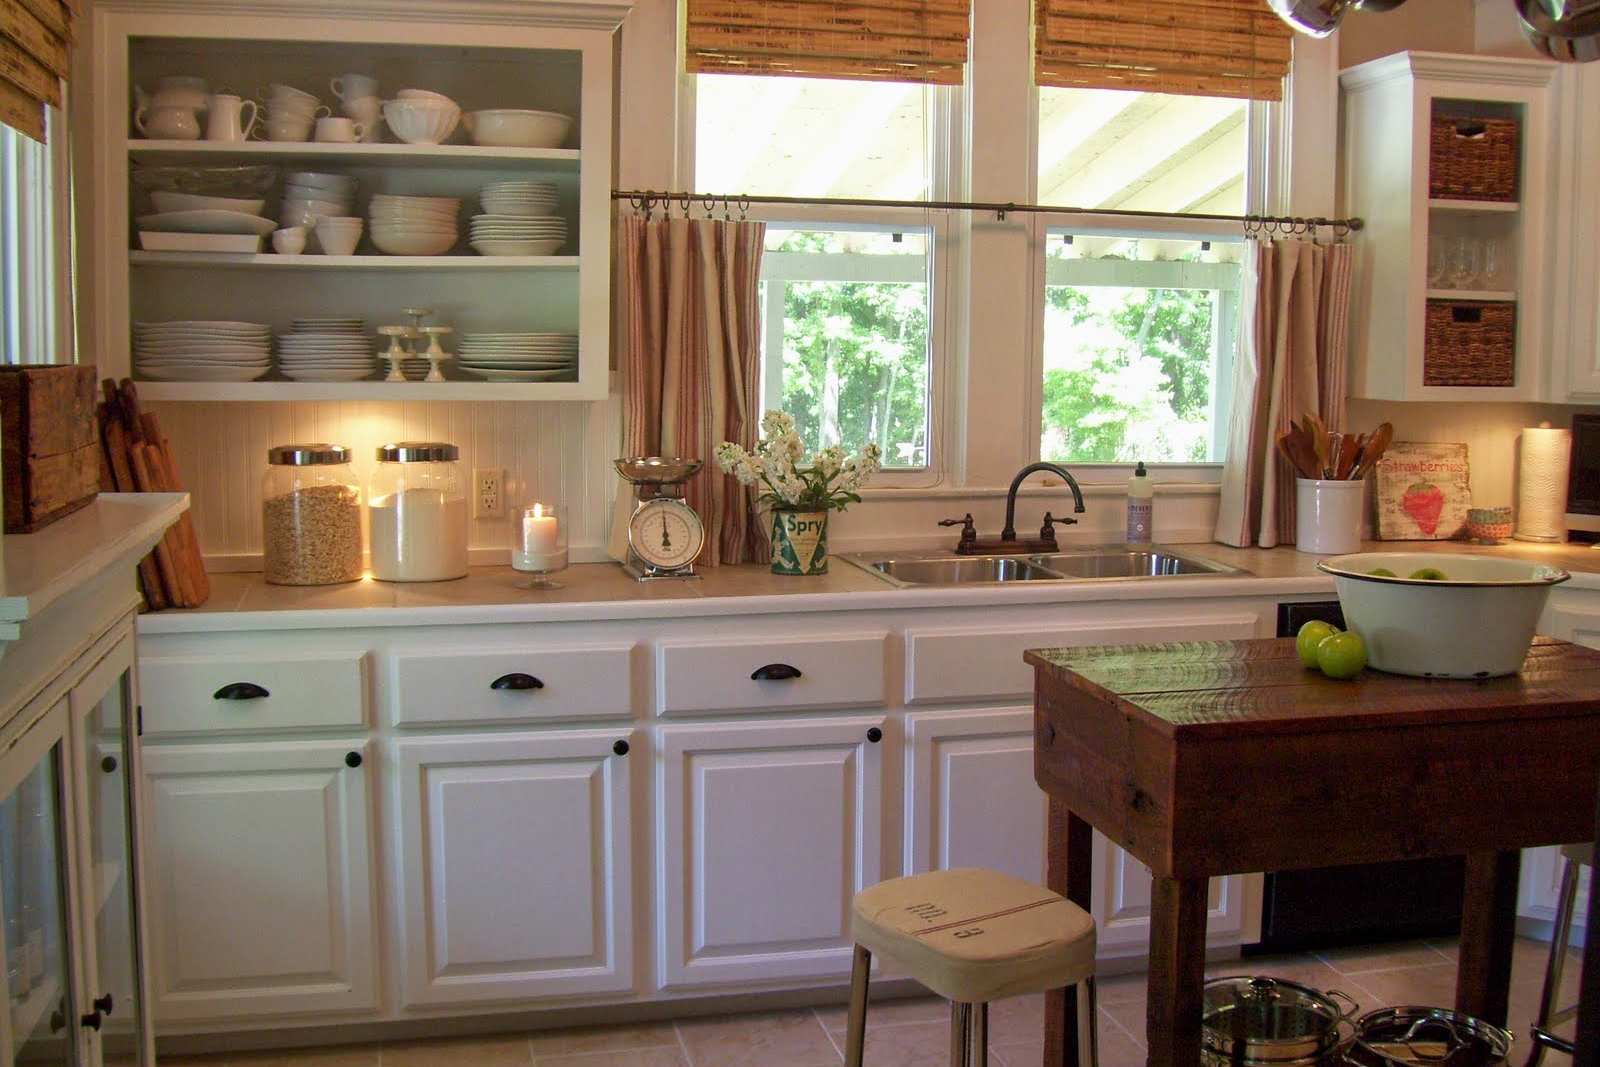 Remodeling A Kitchen Do It Yourself Kitchen Remodel - Kitchen remodelling tips